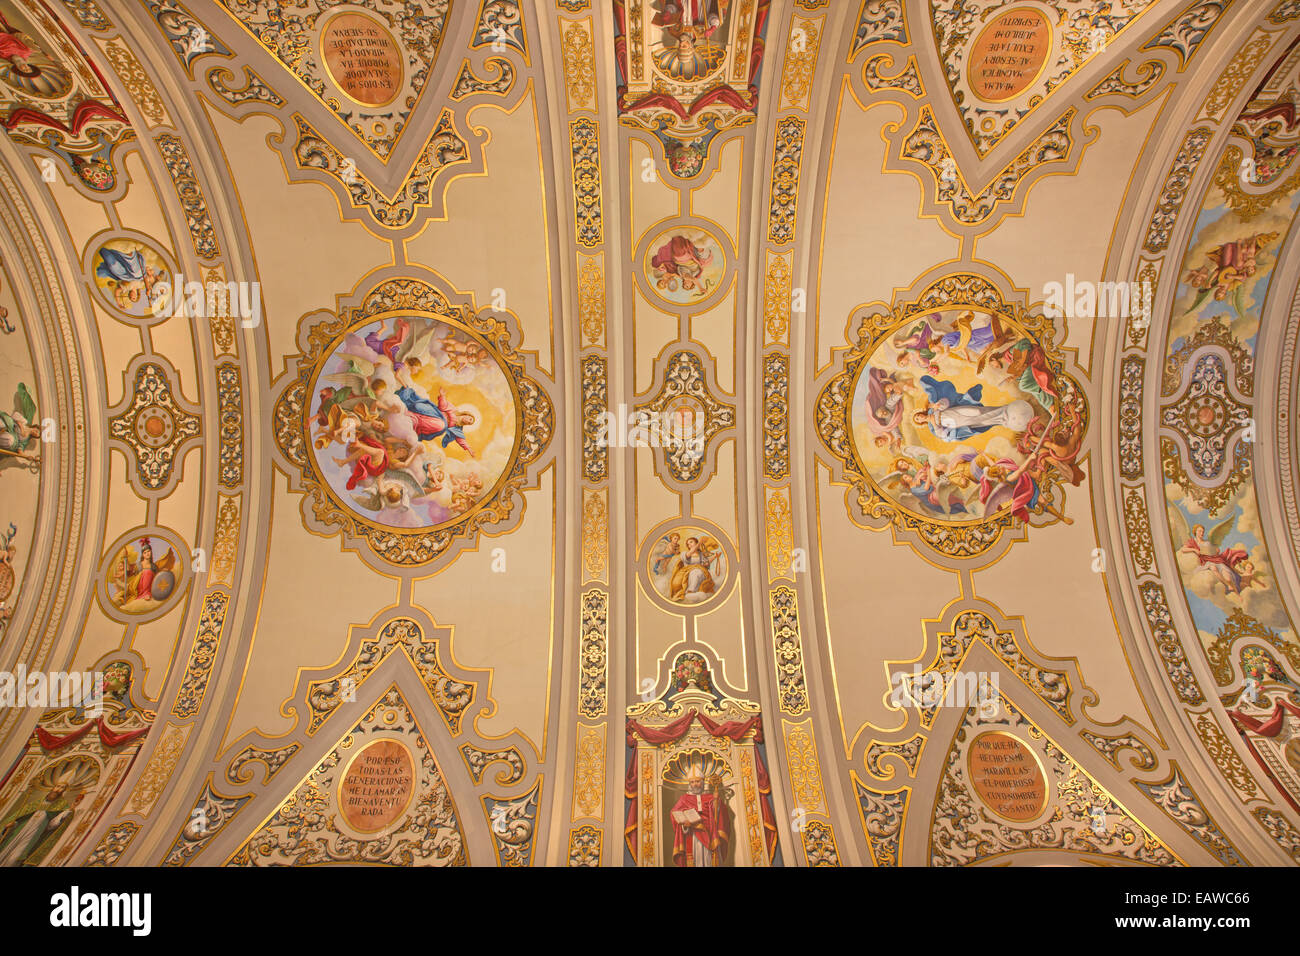 Seville - The frescoes on the ceiling in church Basilica de la Macarena - Stock Image